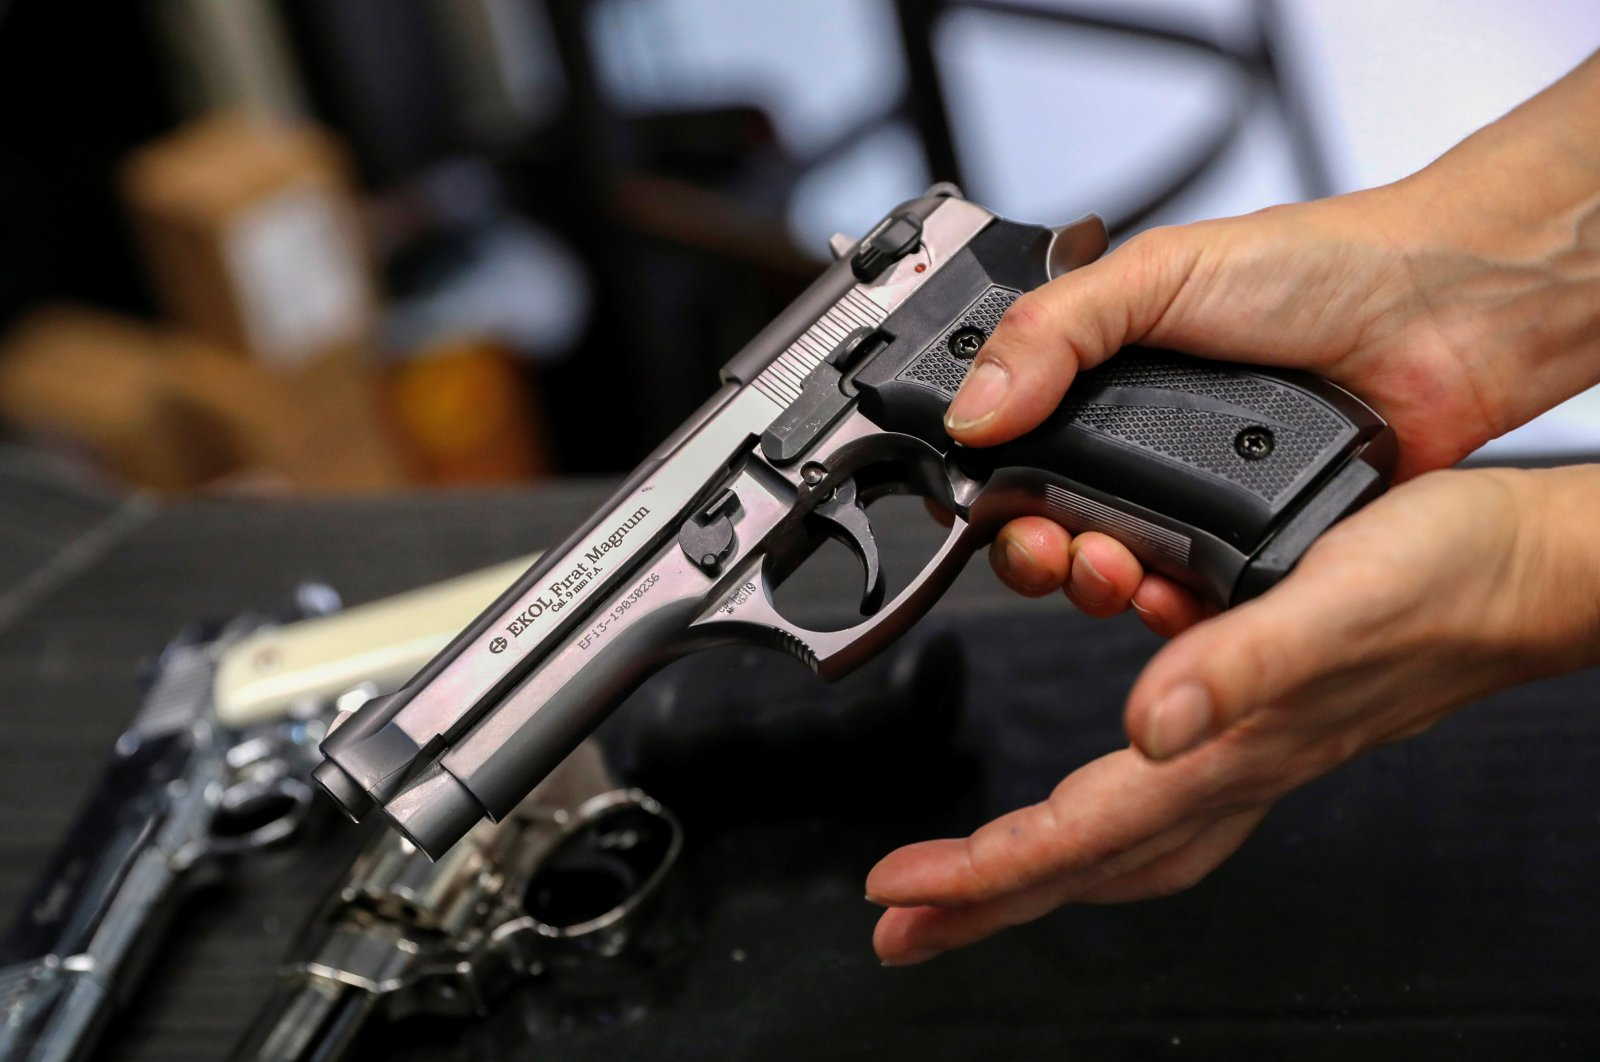 A Hungarian vendor shows an Ekol Firat Magnum gas pistol at a gun shop where people queued up to buy weapons for protection during the coronavirus pandemic, in Budapest, March 20, 2020. (Reuters Photo)